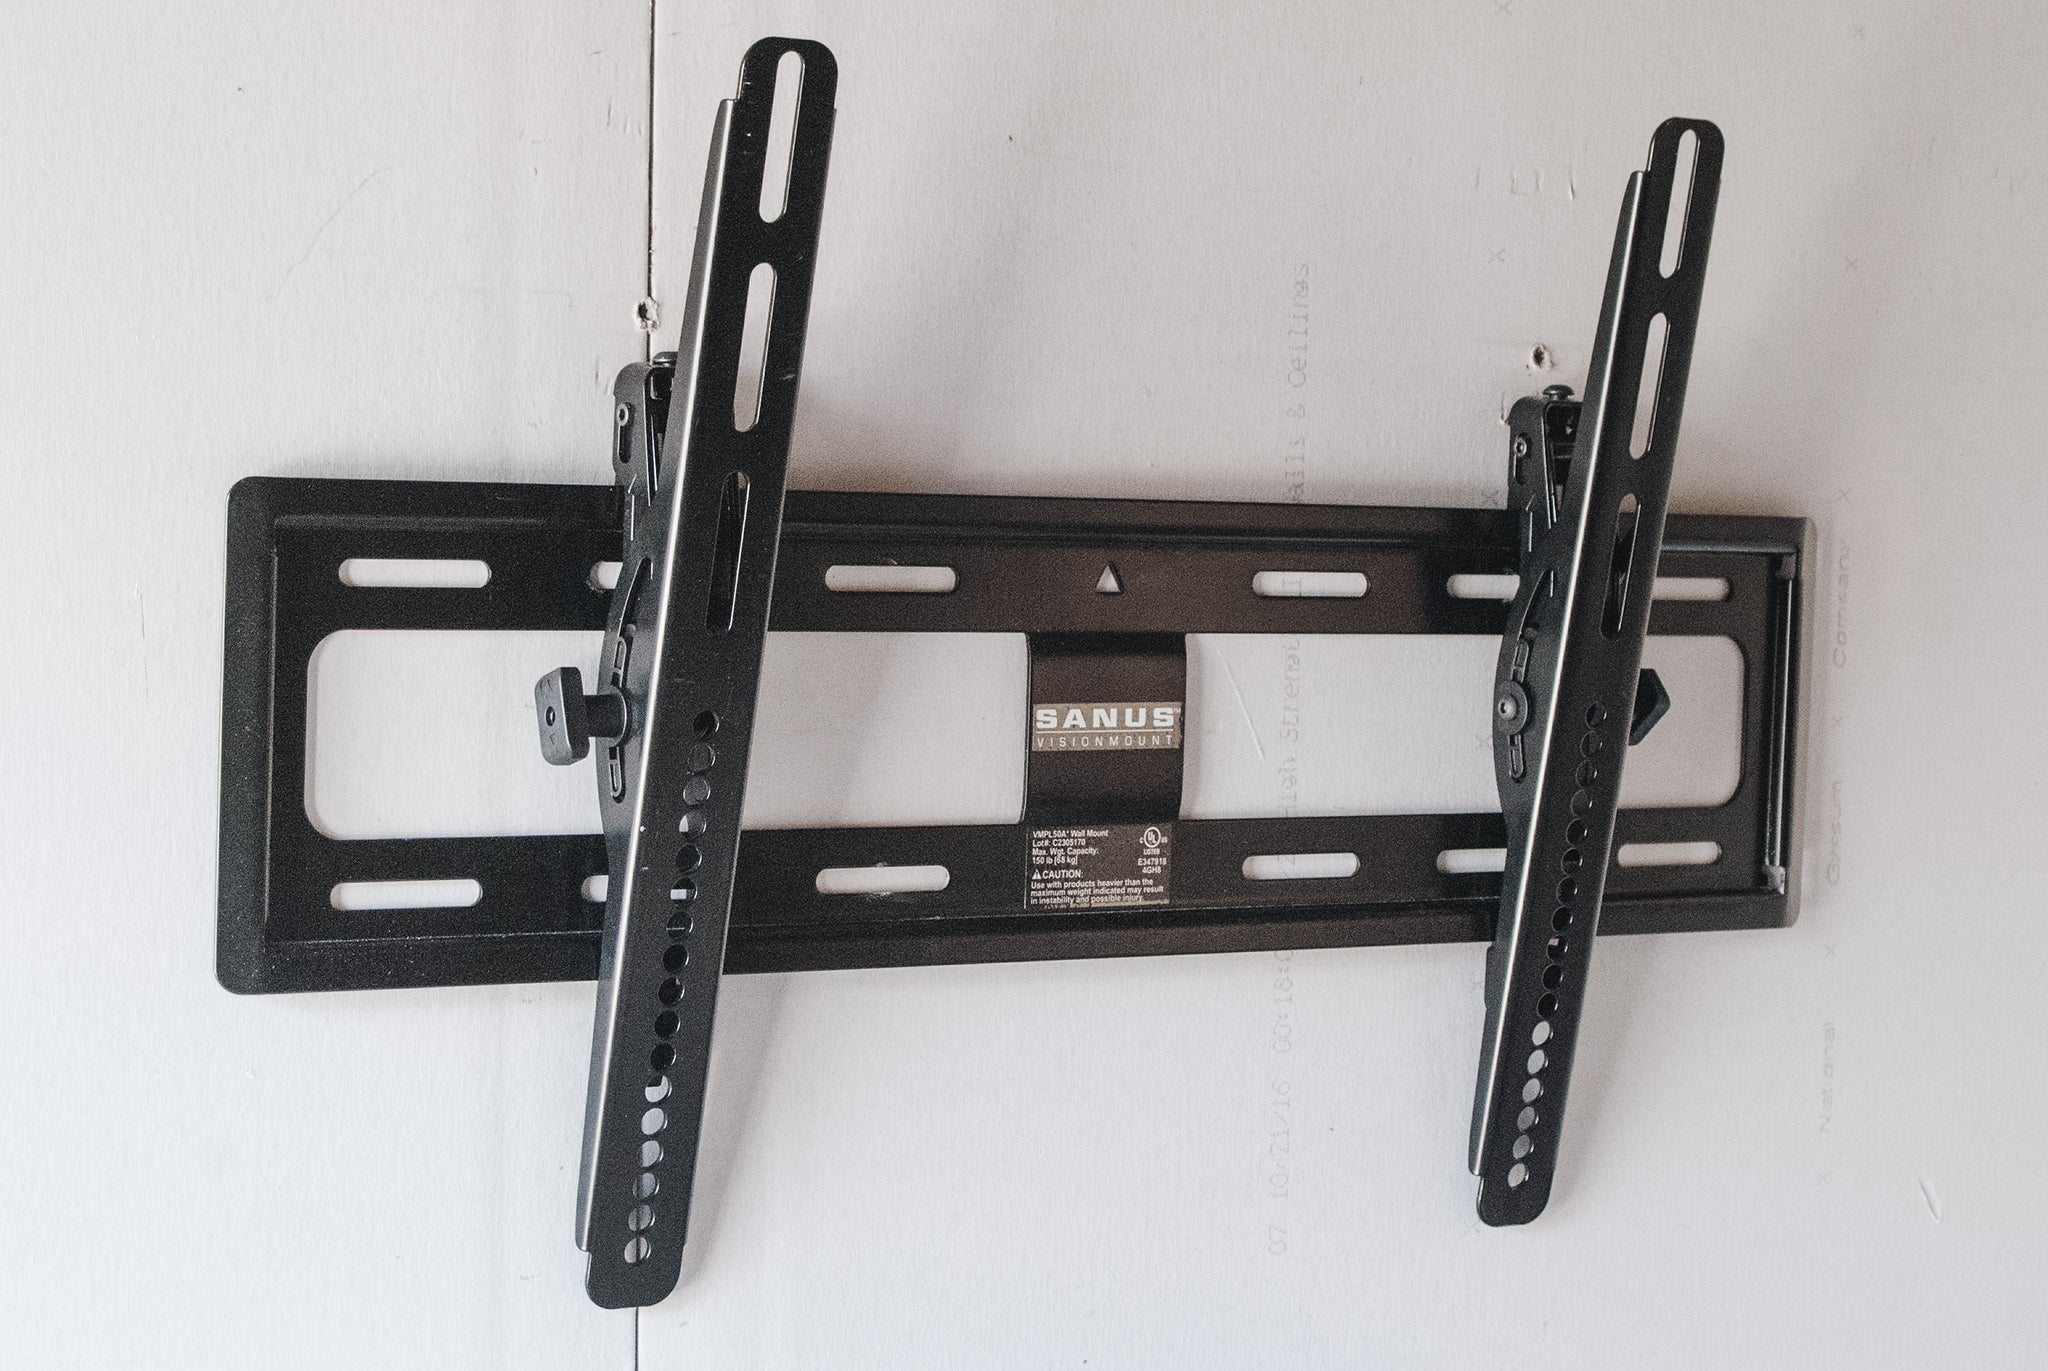 best tv wall mount 2021 reviews by